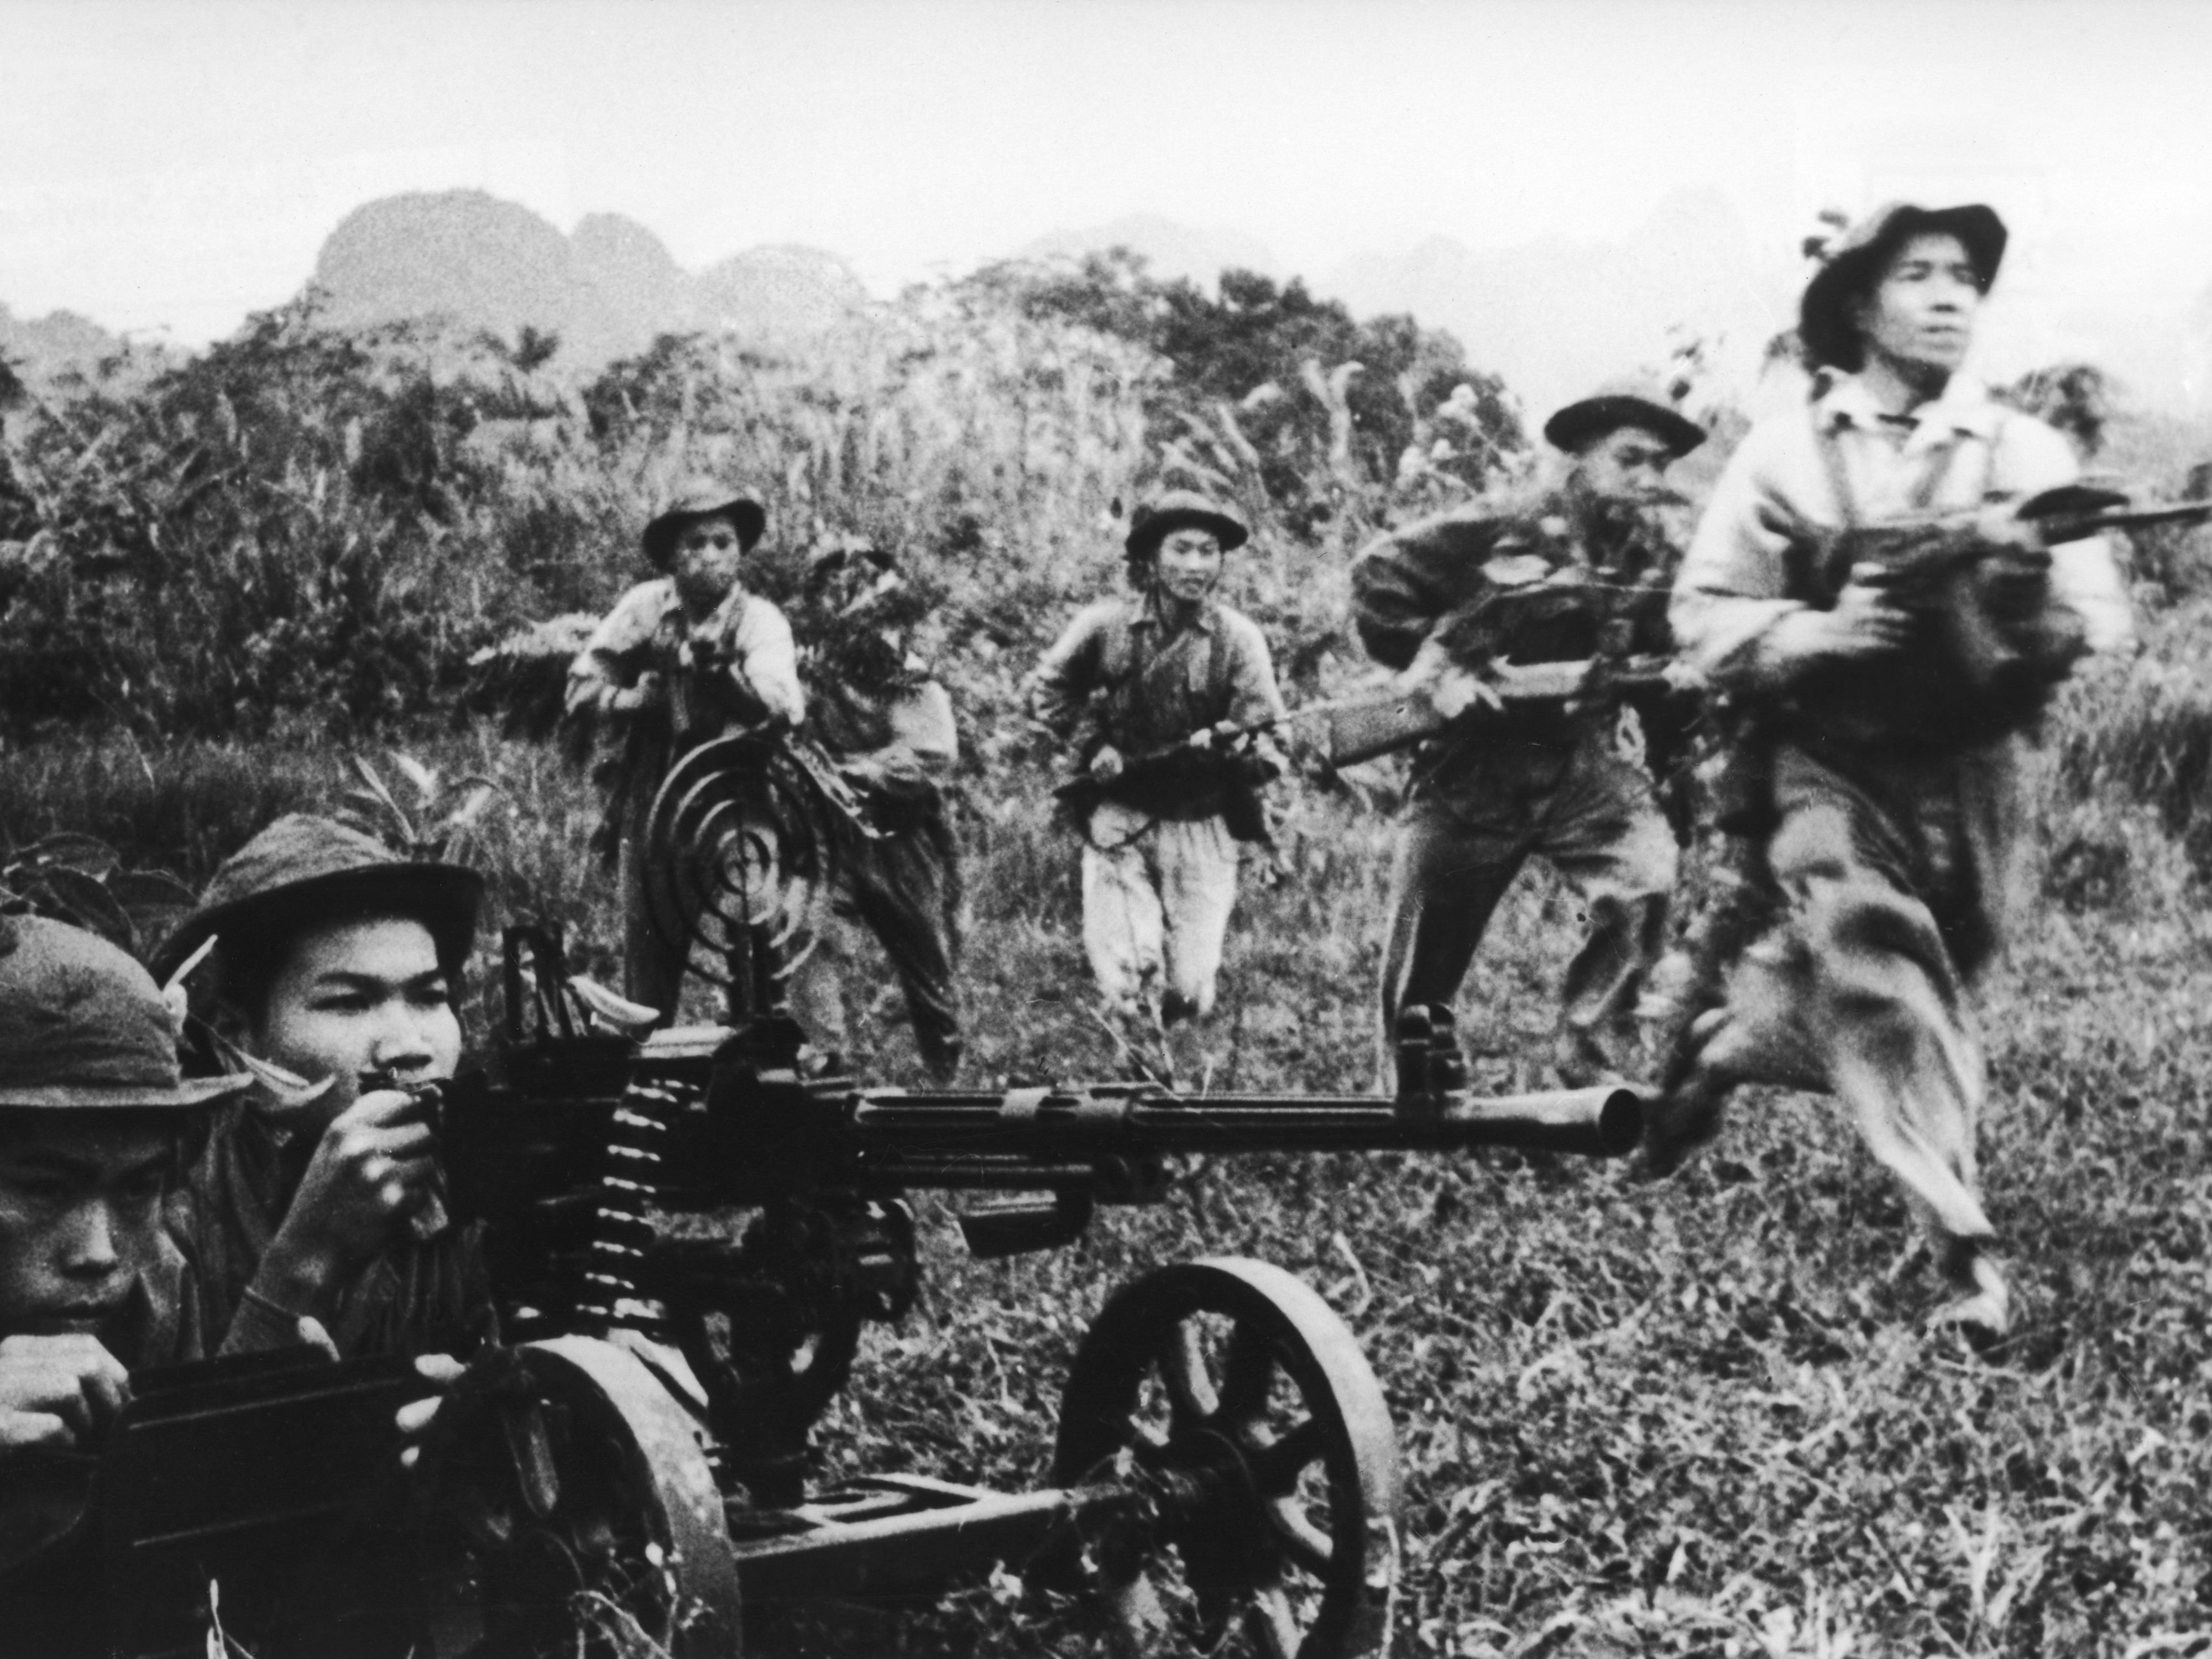 Who Were the Viet Cong?